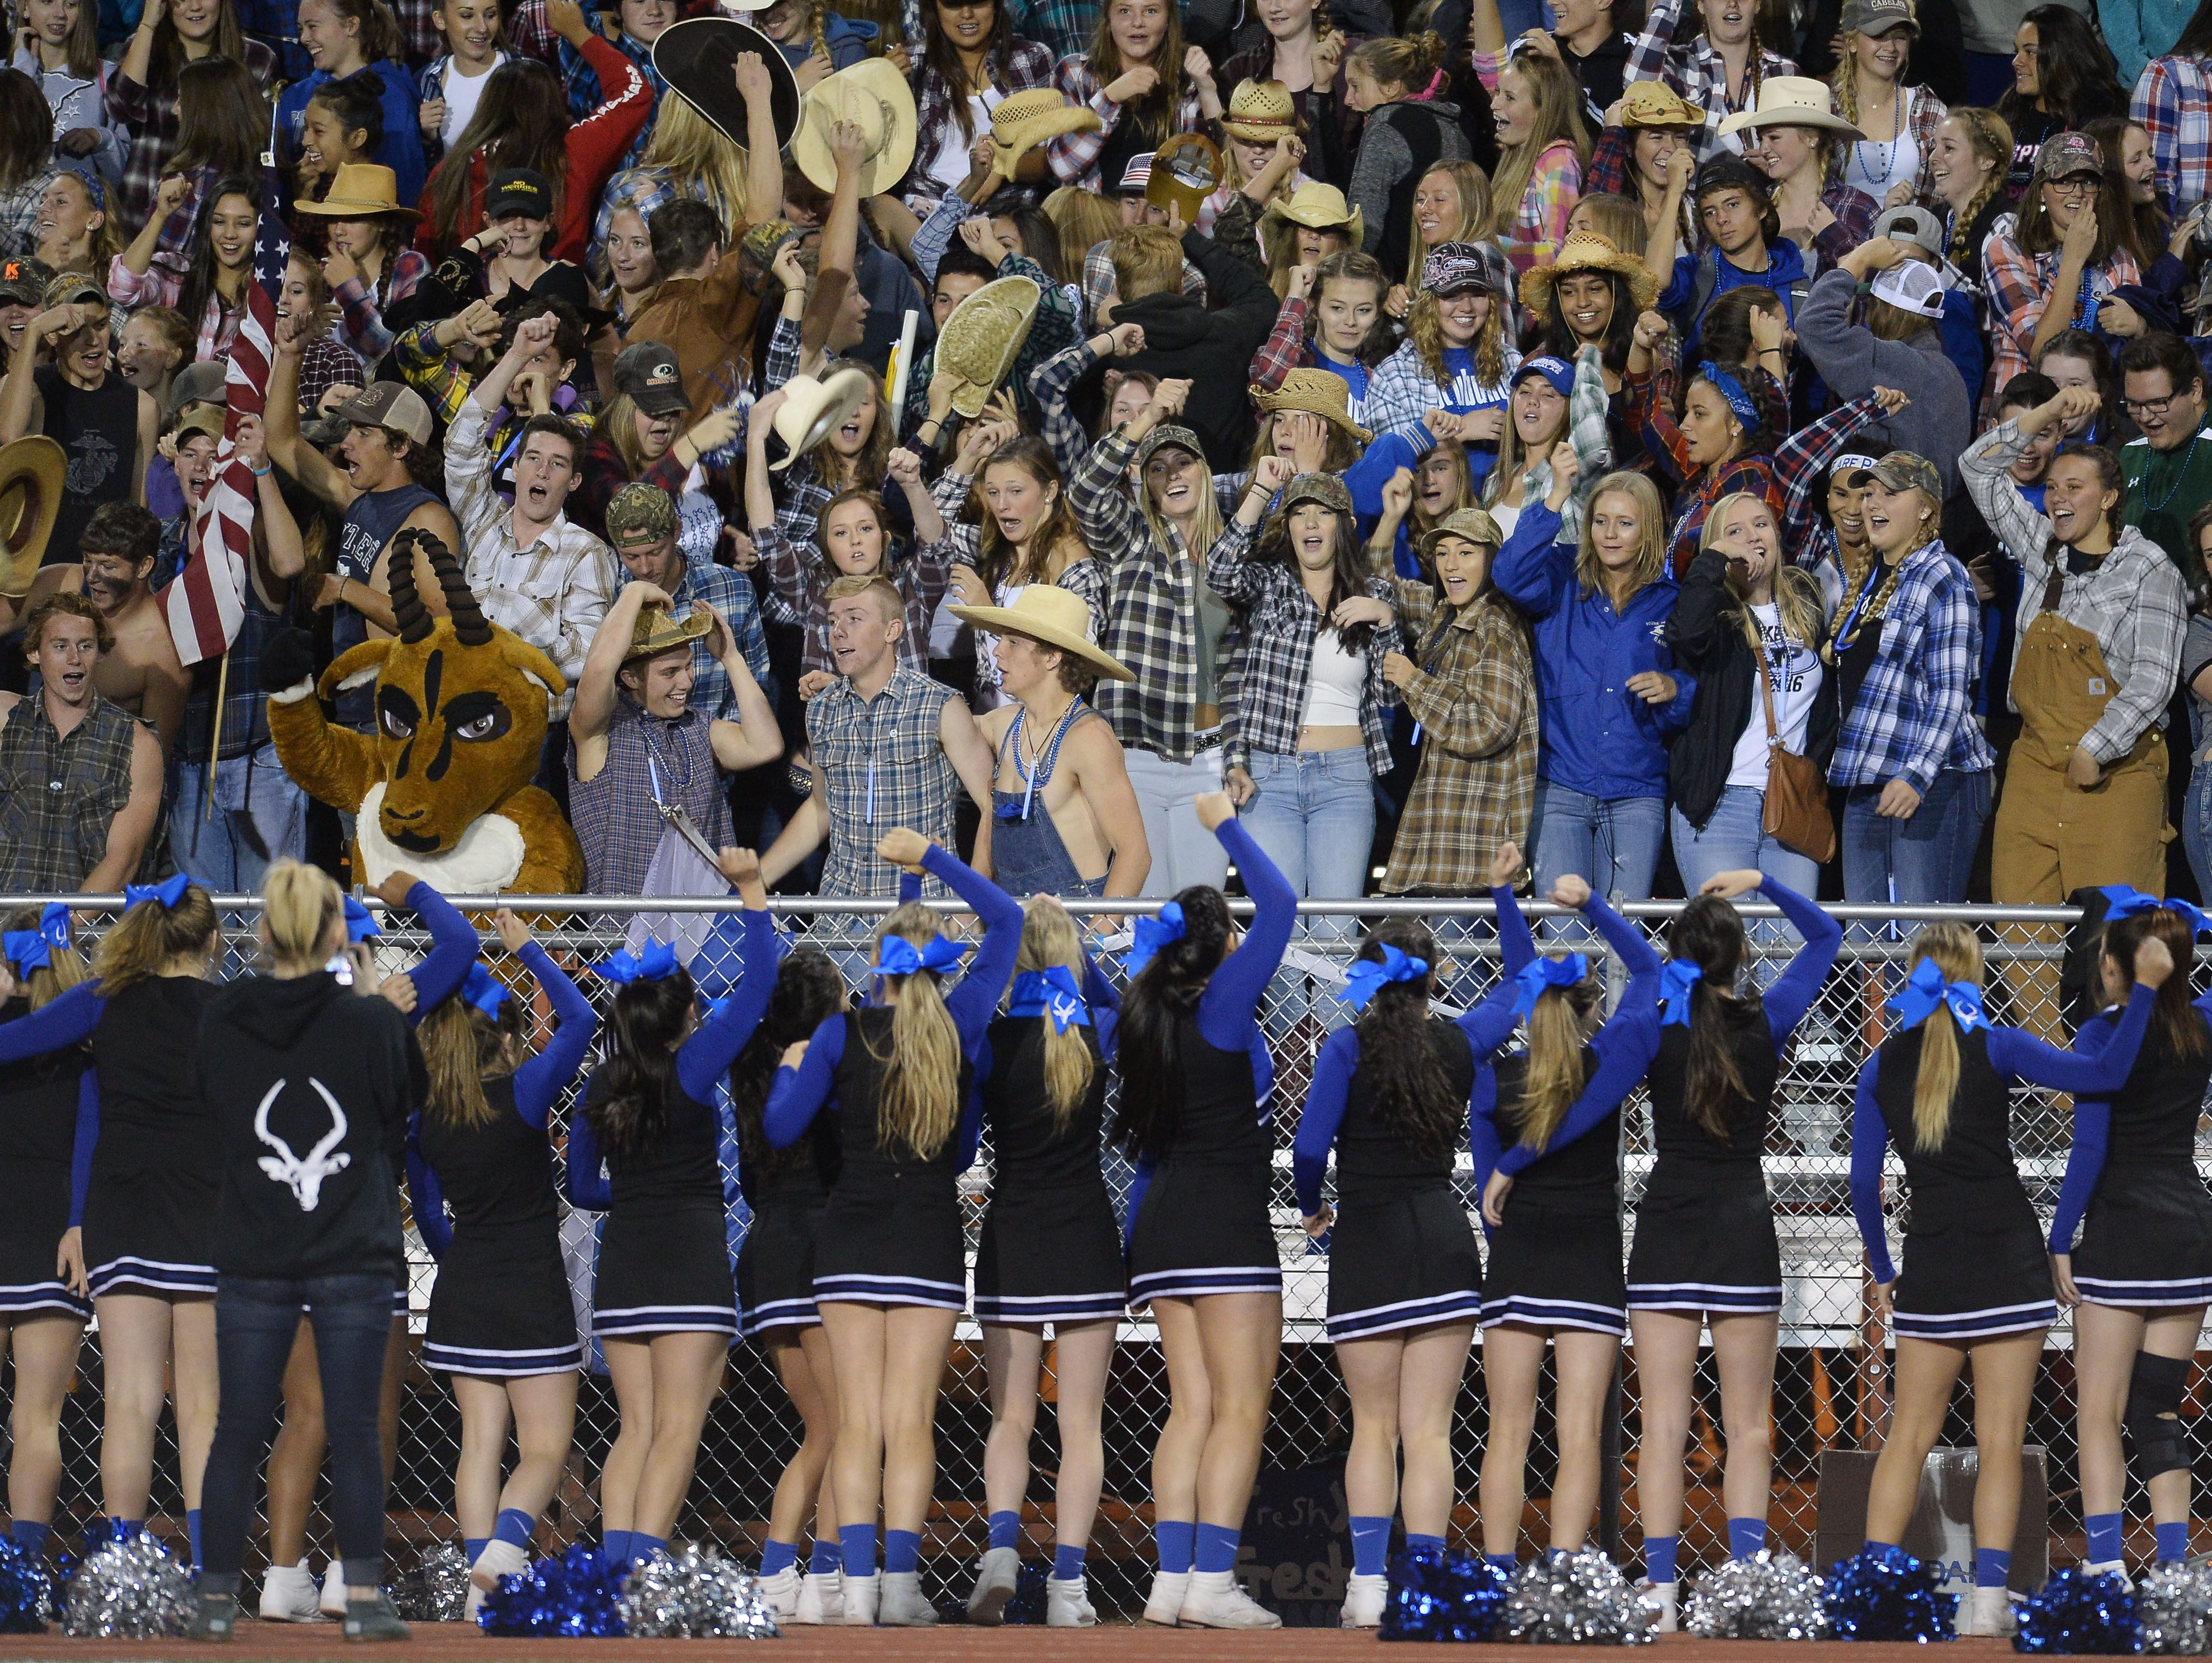 Friday's 4 p.m. football game between Fountain-Fort Carson and Poudre will be streamed live at Coloradoan.com.